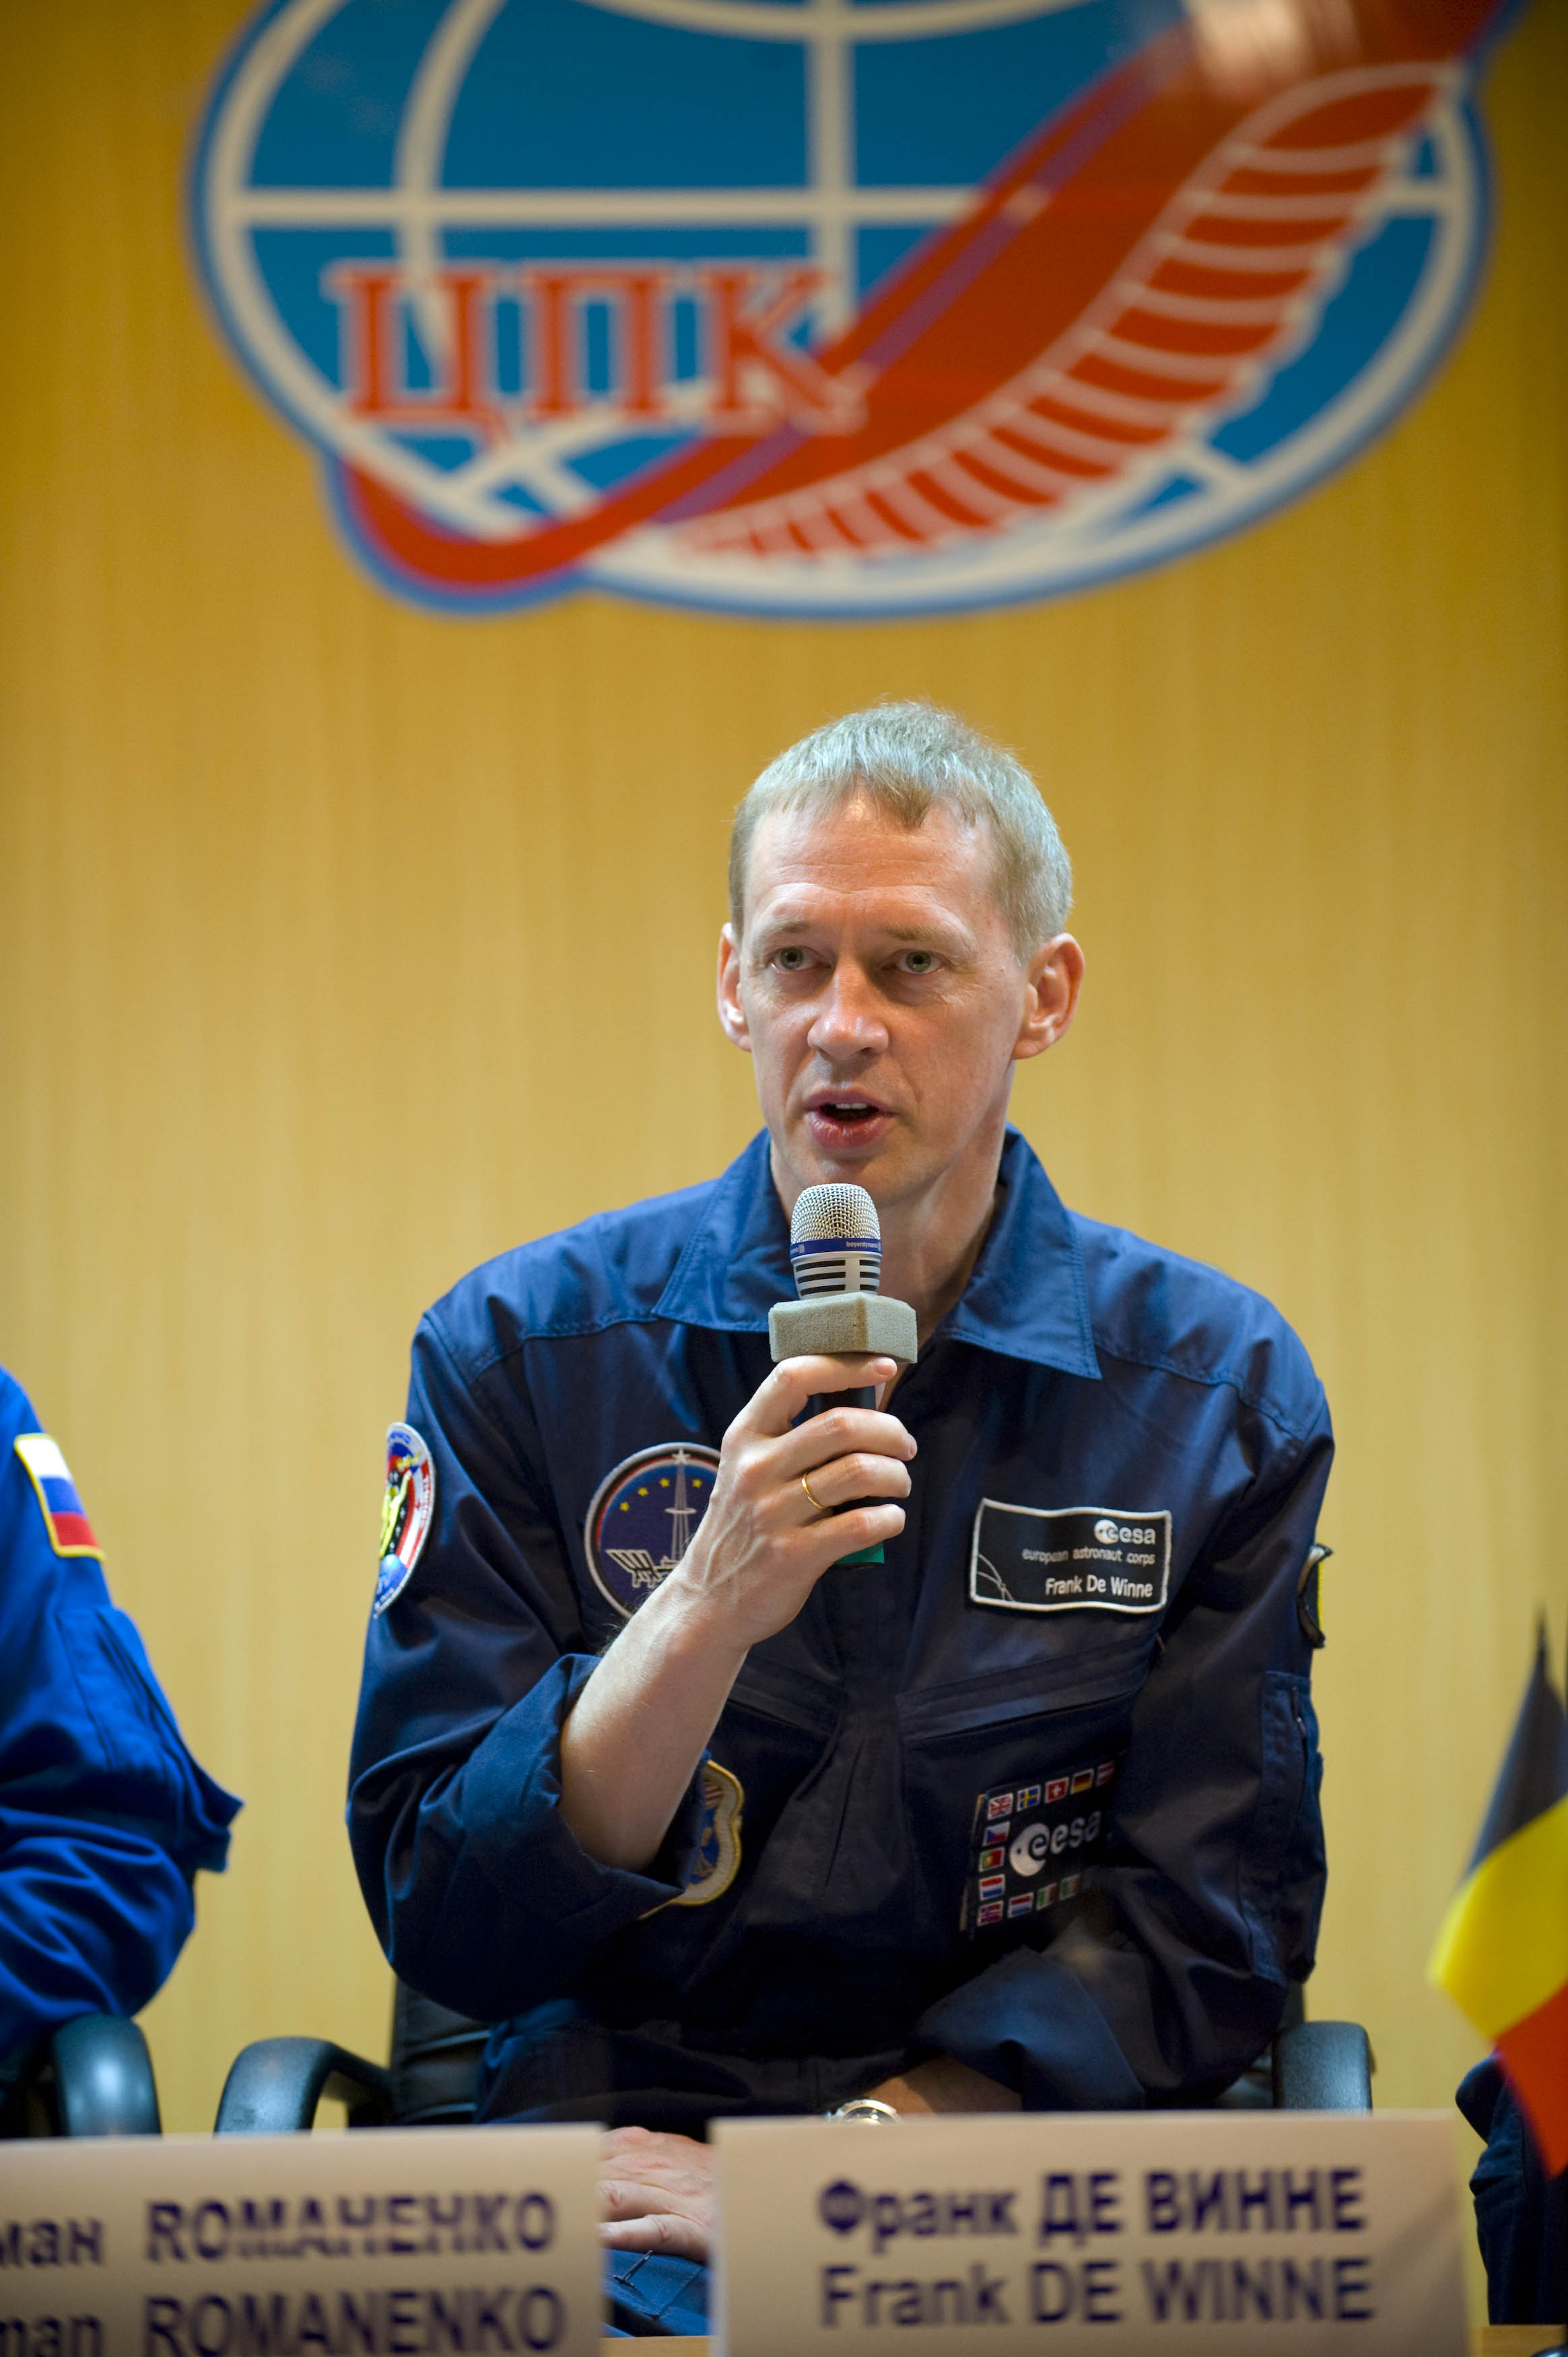 astronaut answers questions in space - photo #23